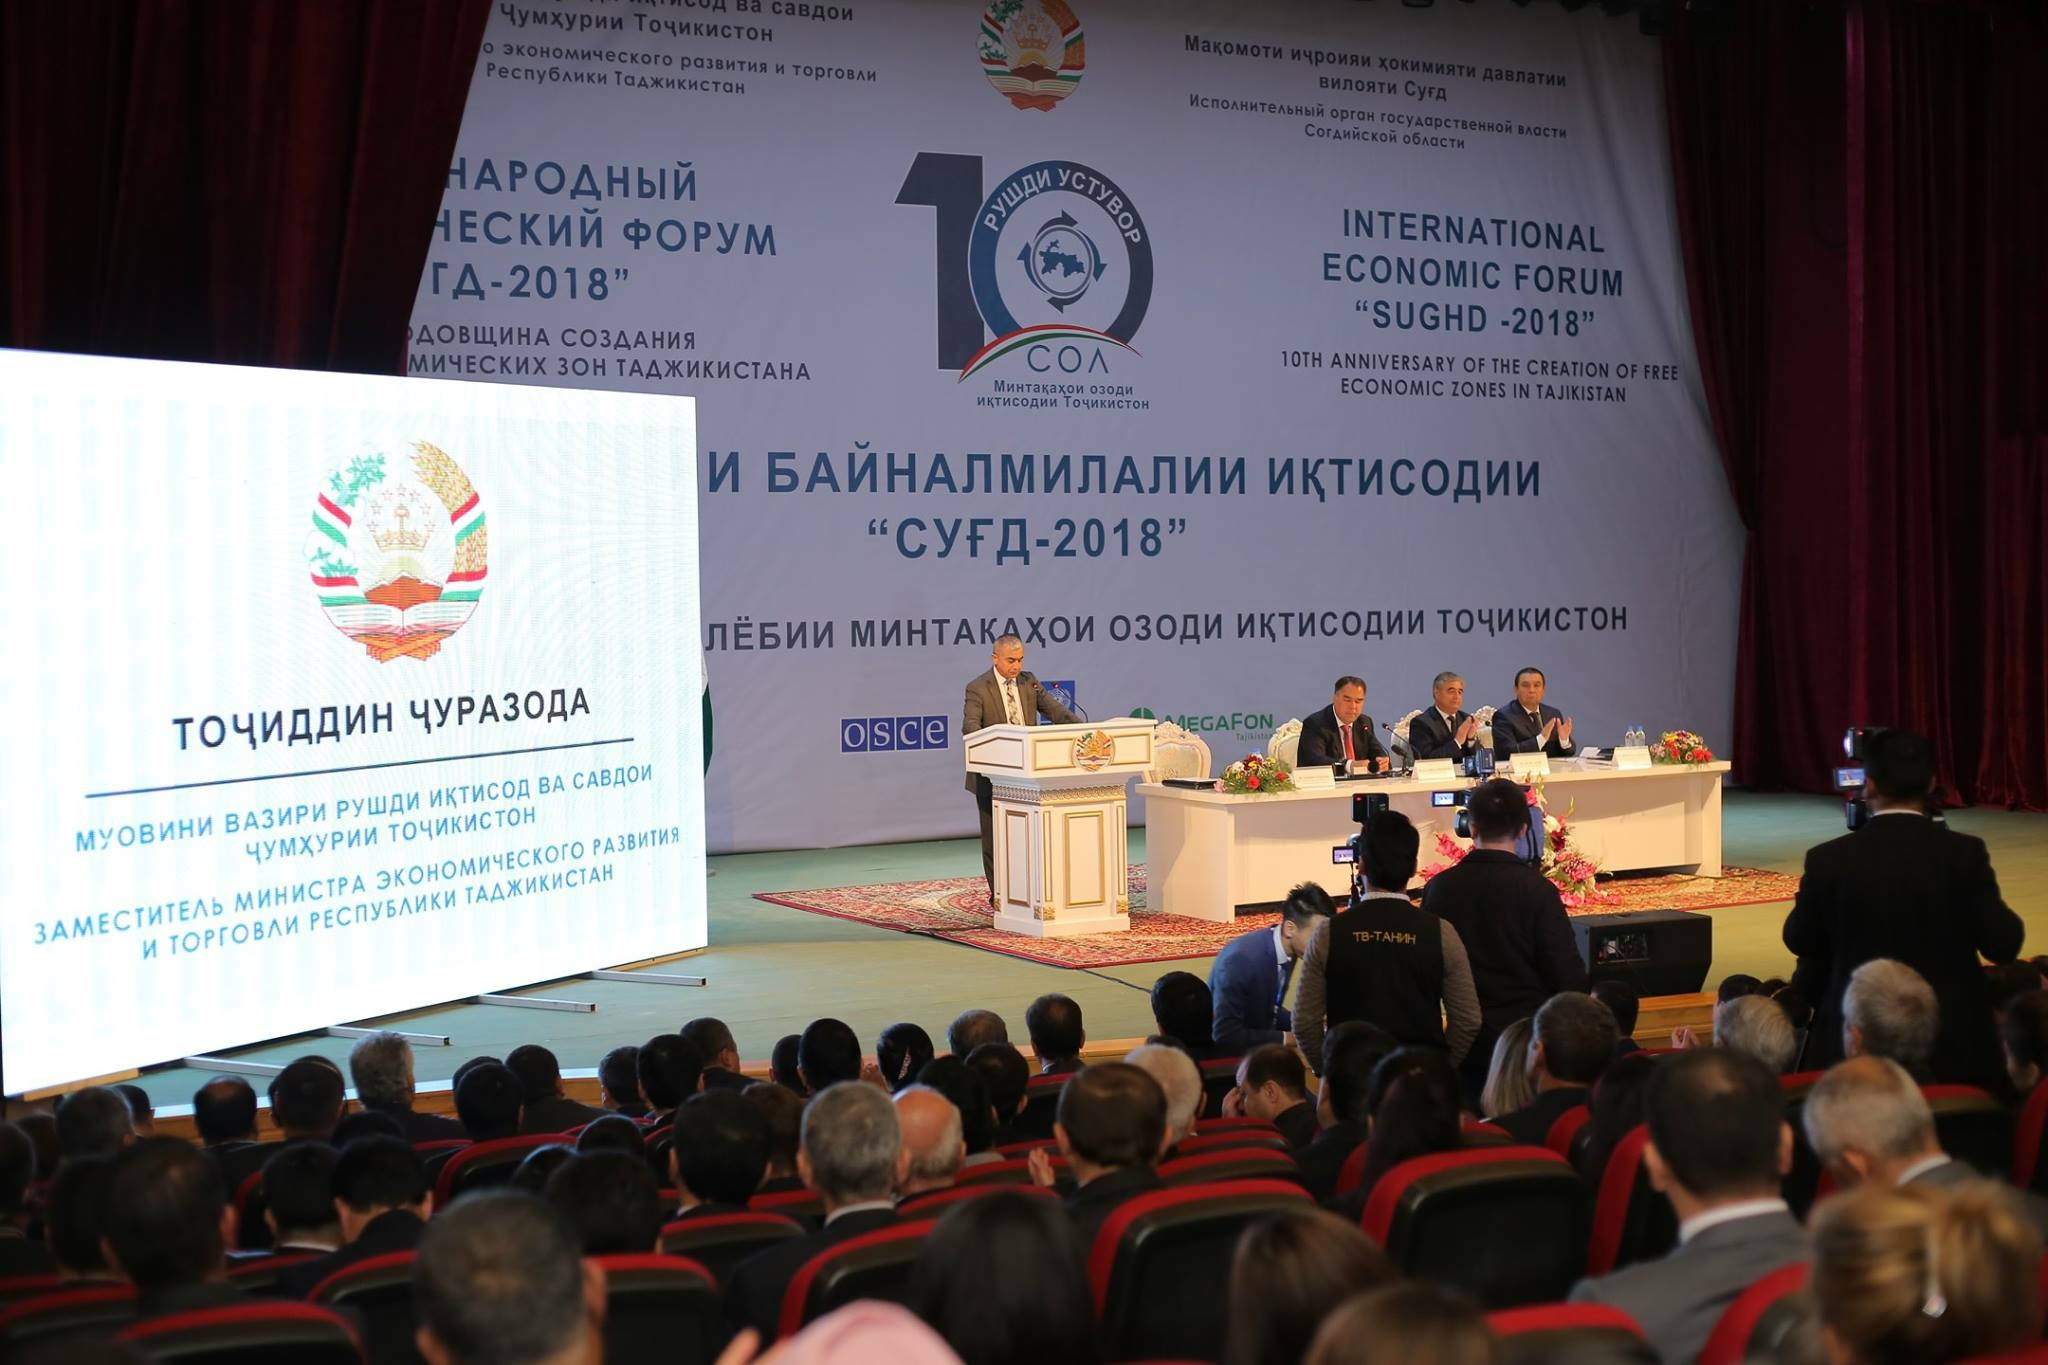 Outcomes of International Economic Forum